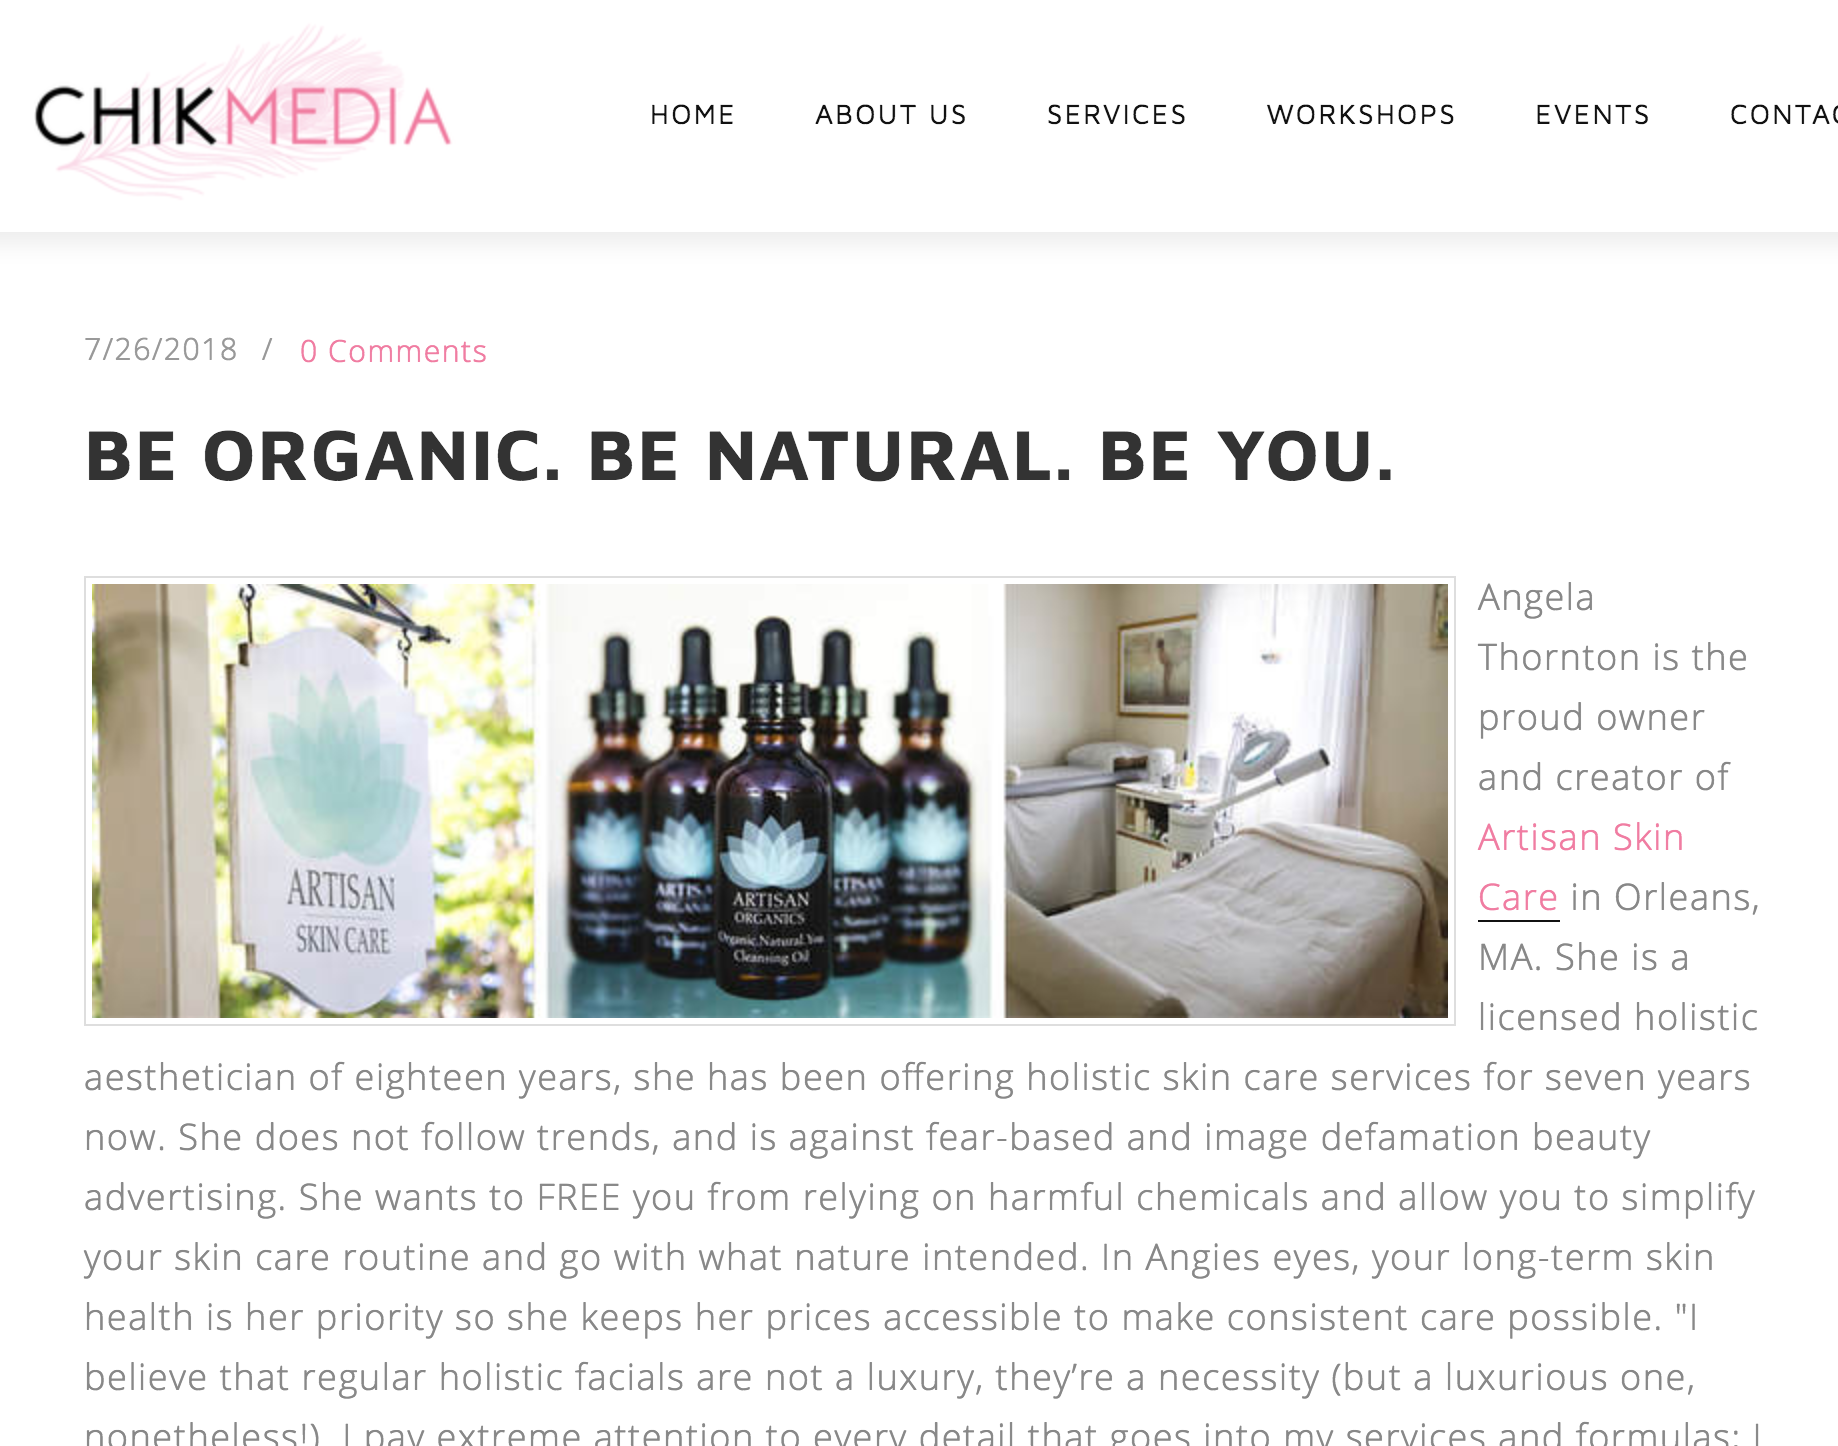 ChikChat: Be Organic. Be Natural. Be You.